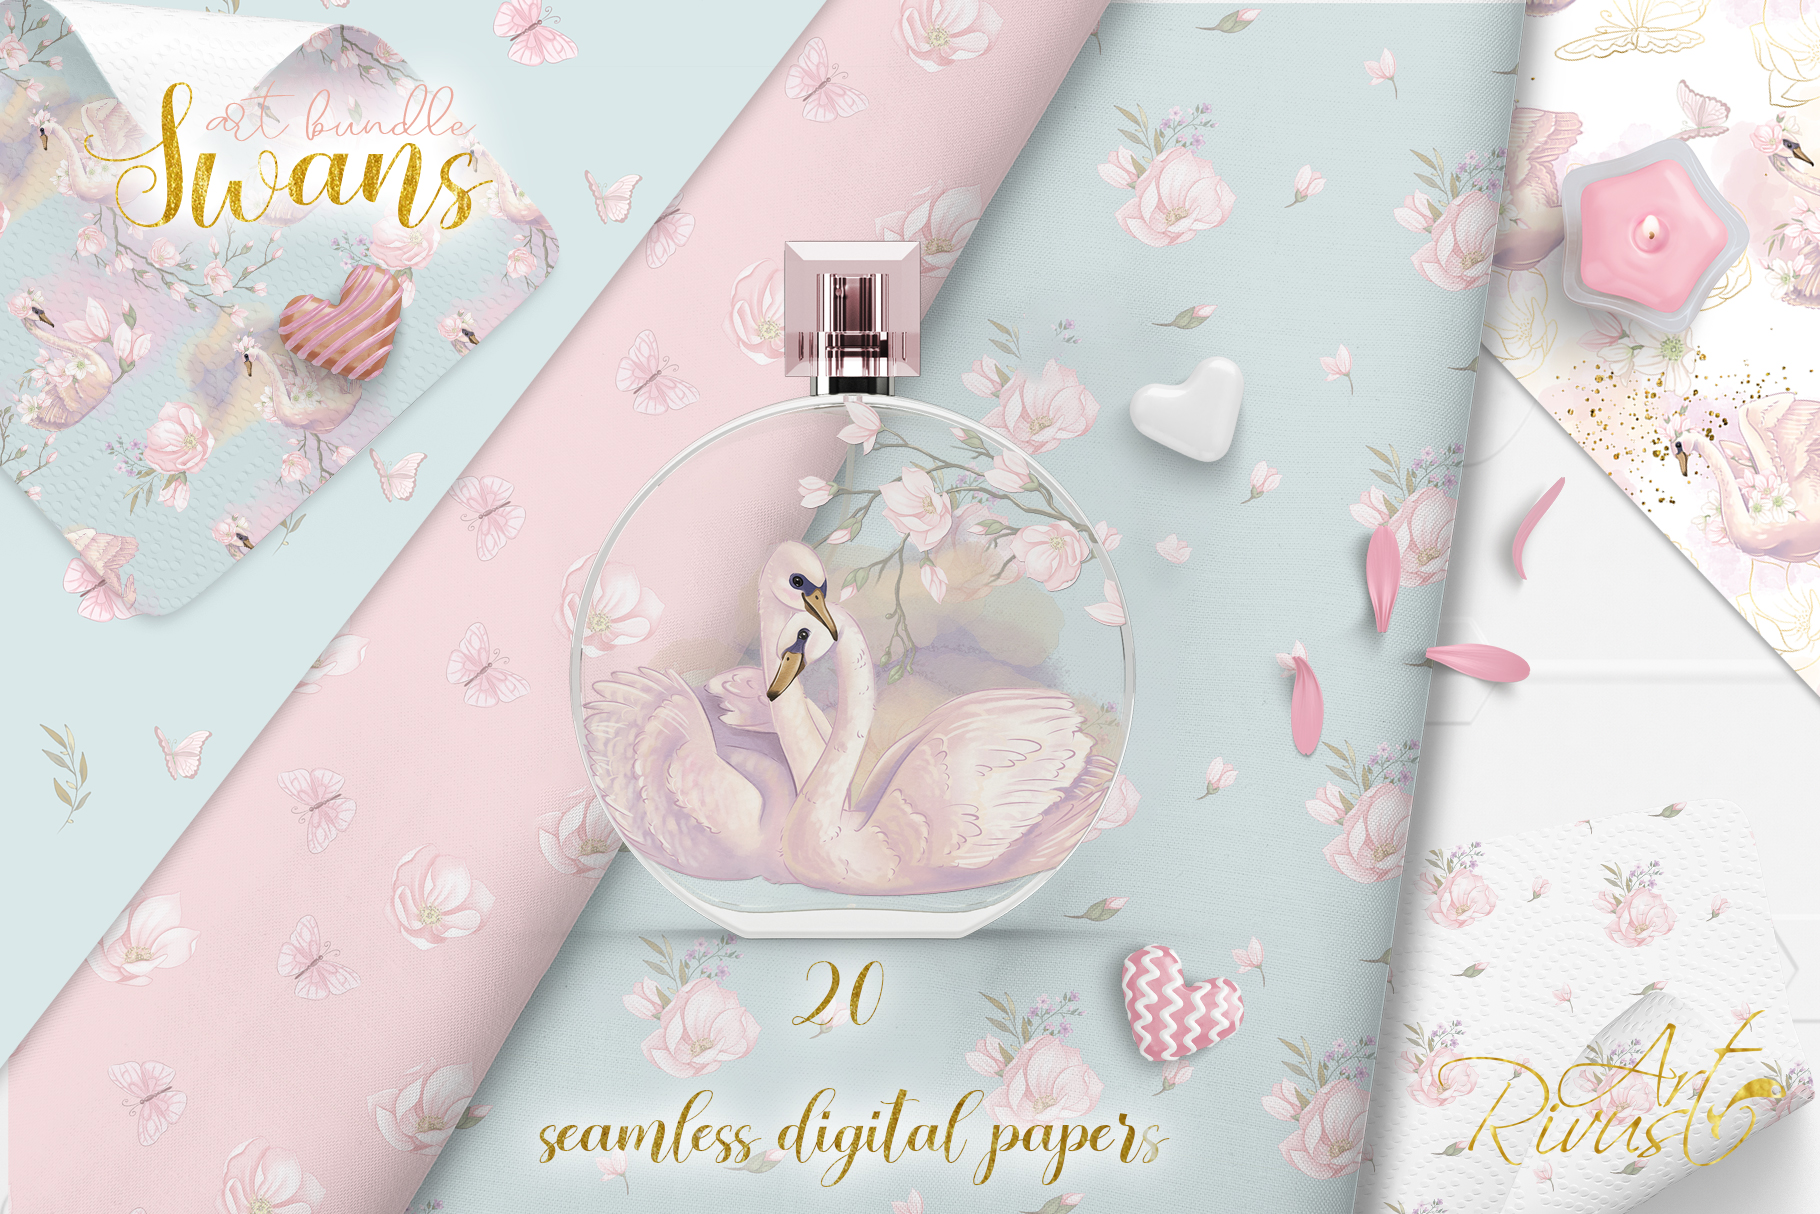 Swans clipart bundle. Wedding and baby shower graphic pack. example image 5